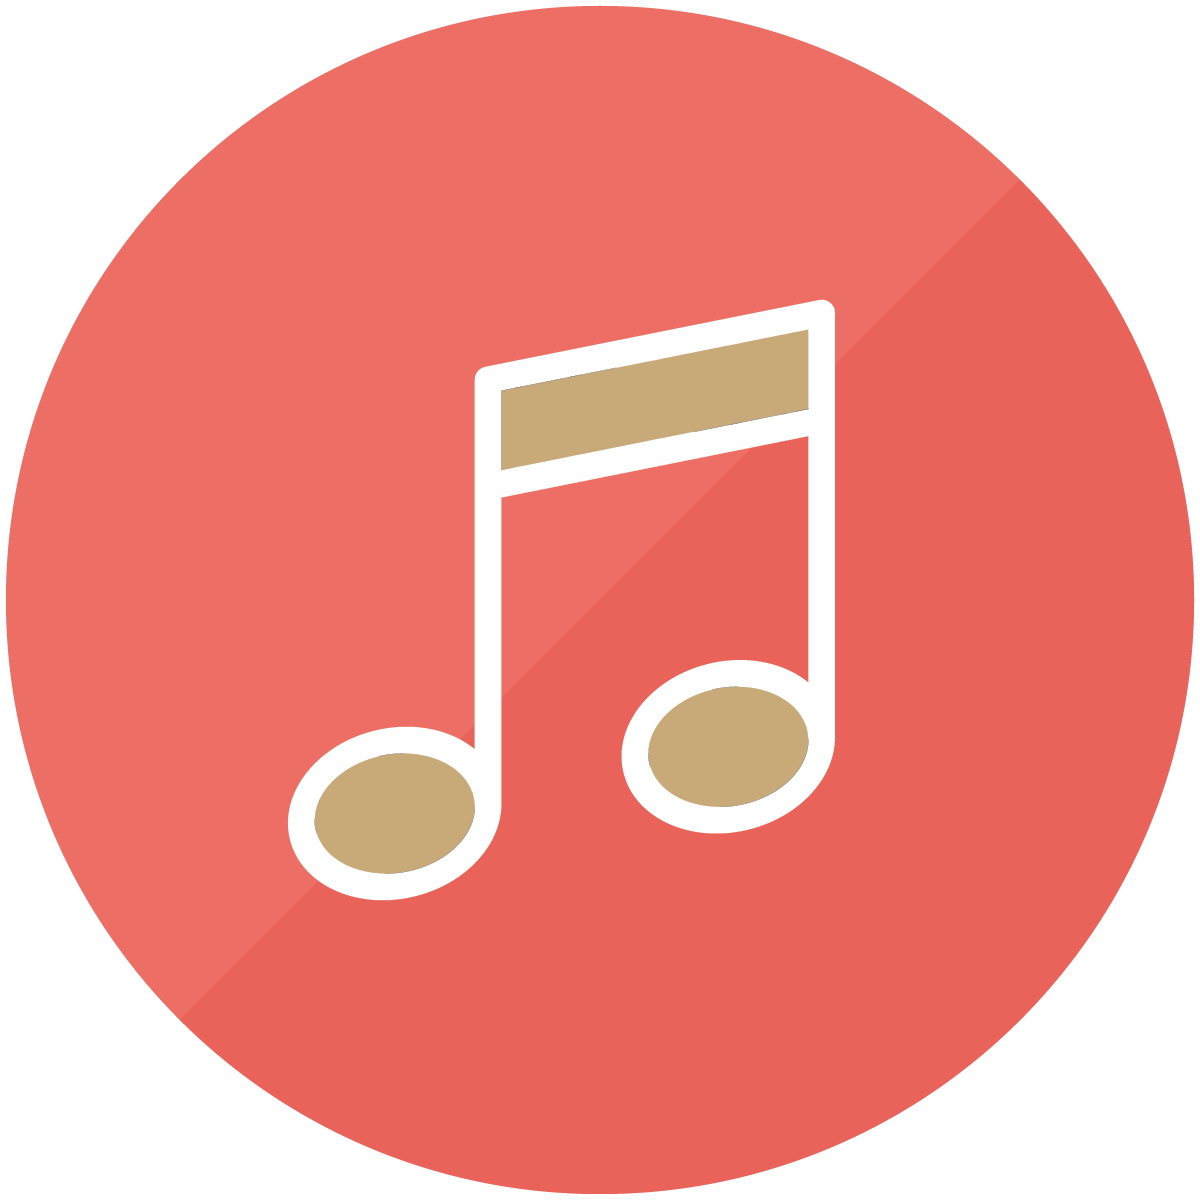 Expensive music (music rights vary widely)